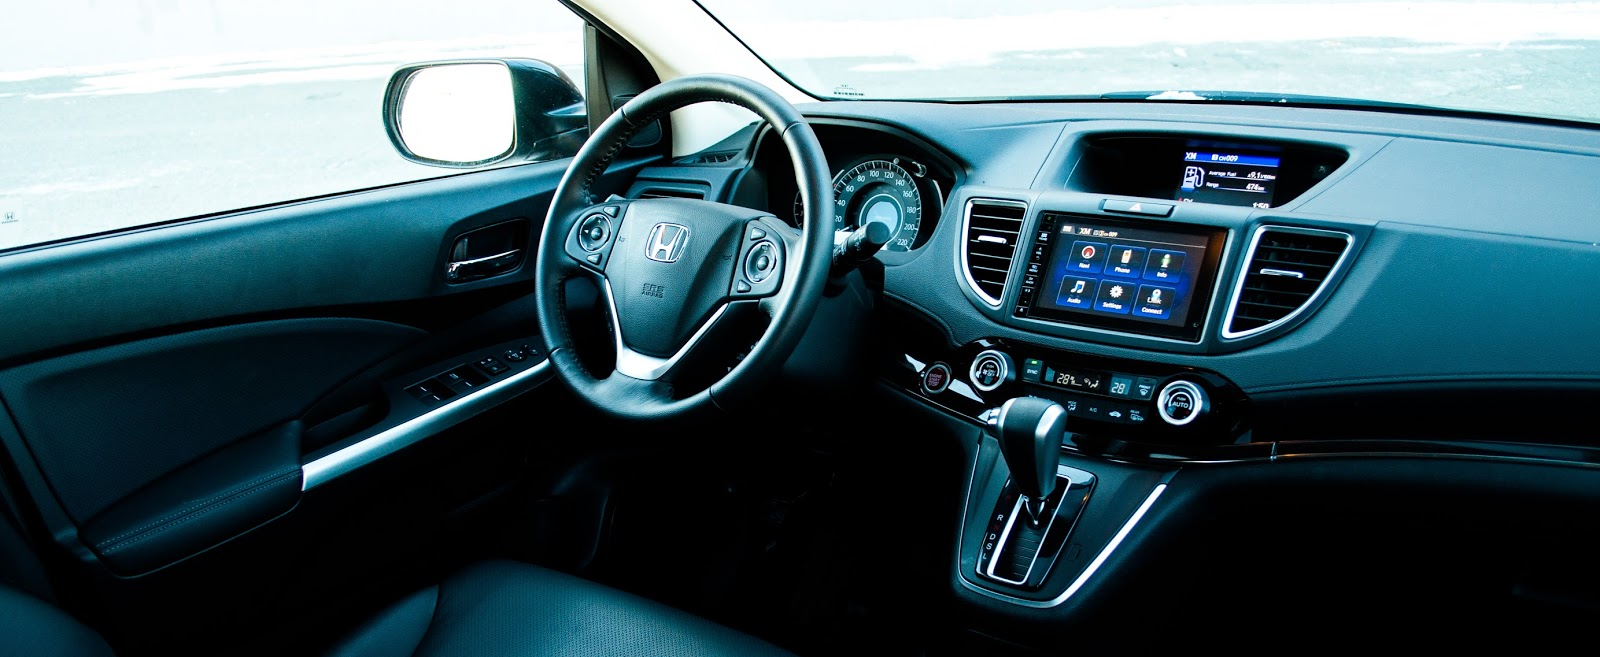 2015 Honda CR-V Touring interior